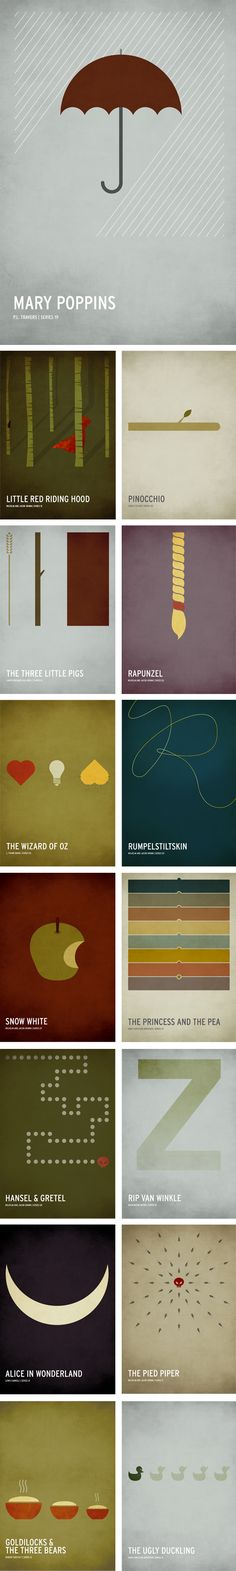 #illustrations-posters